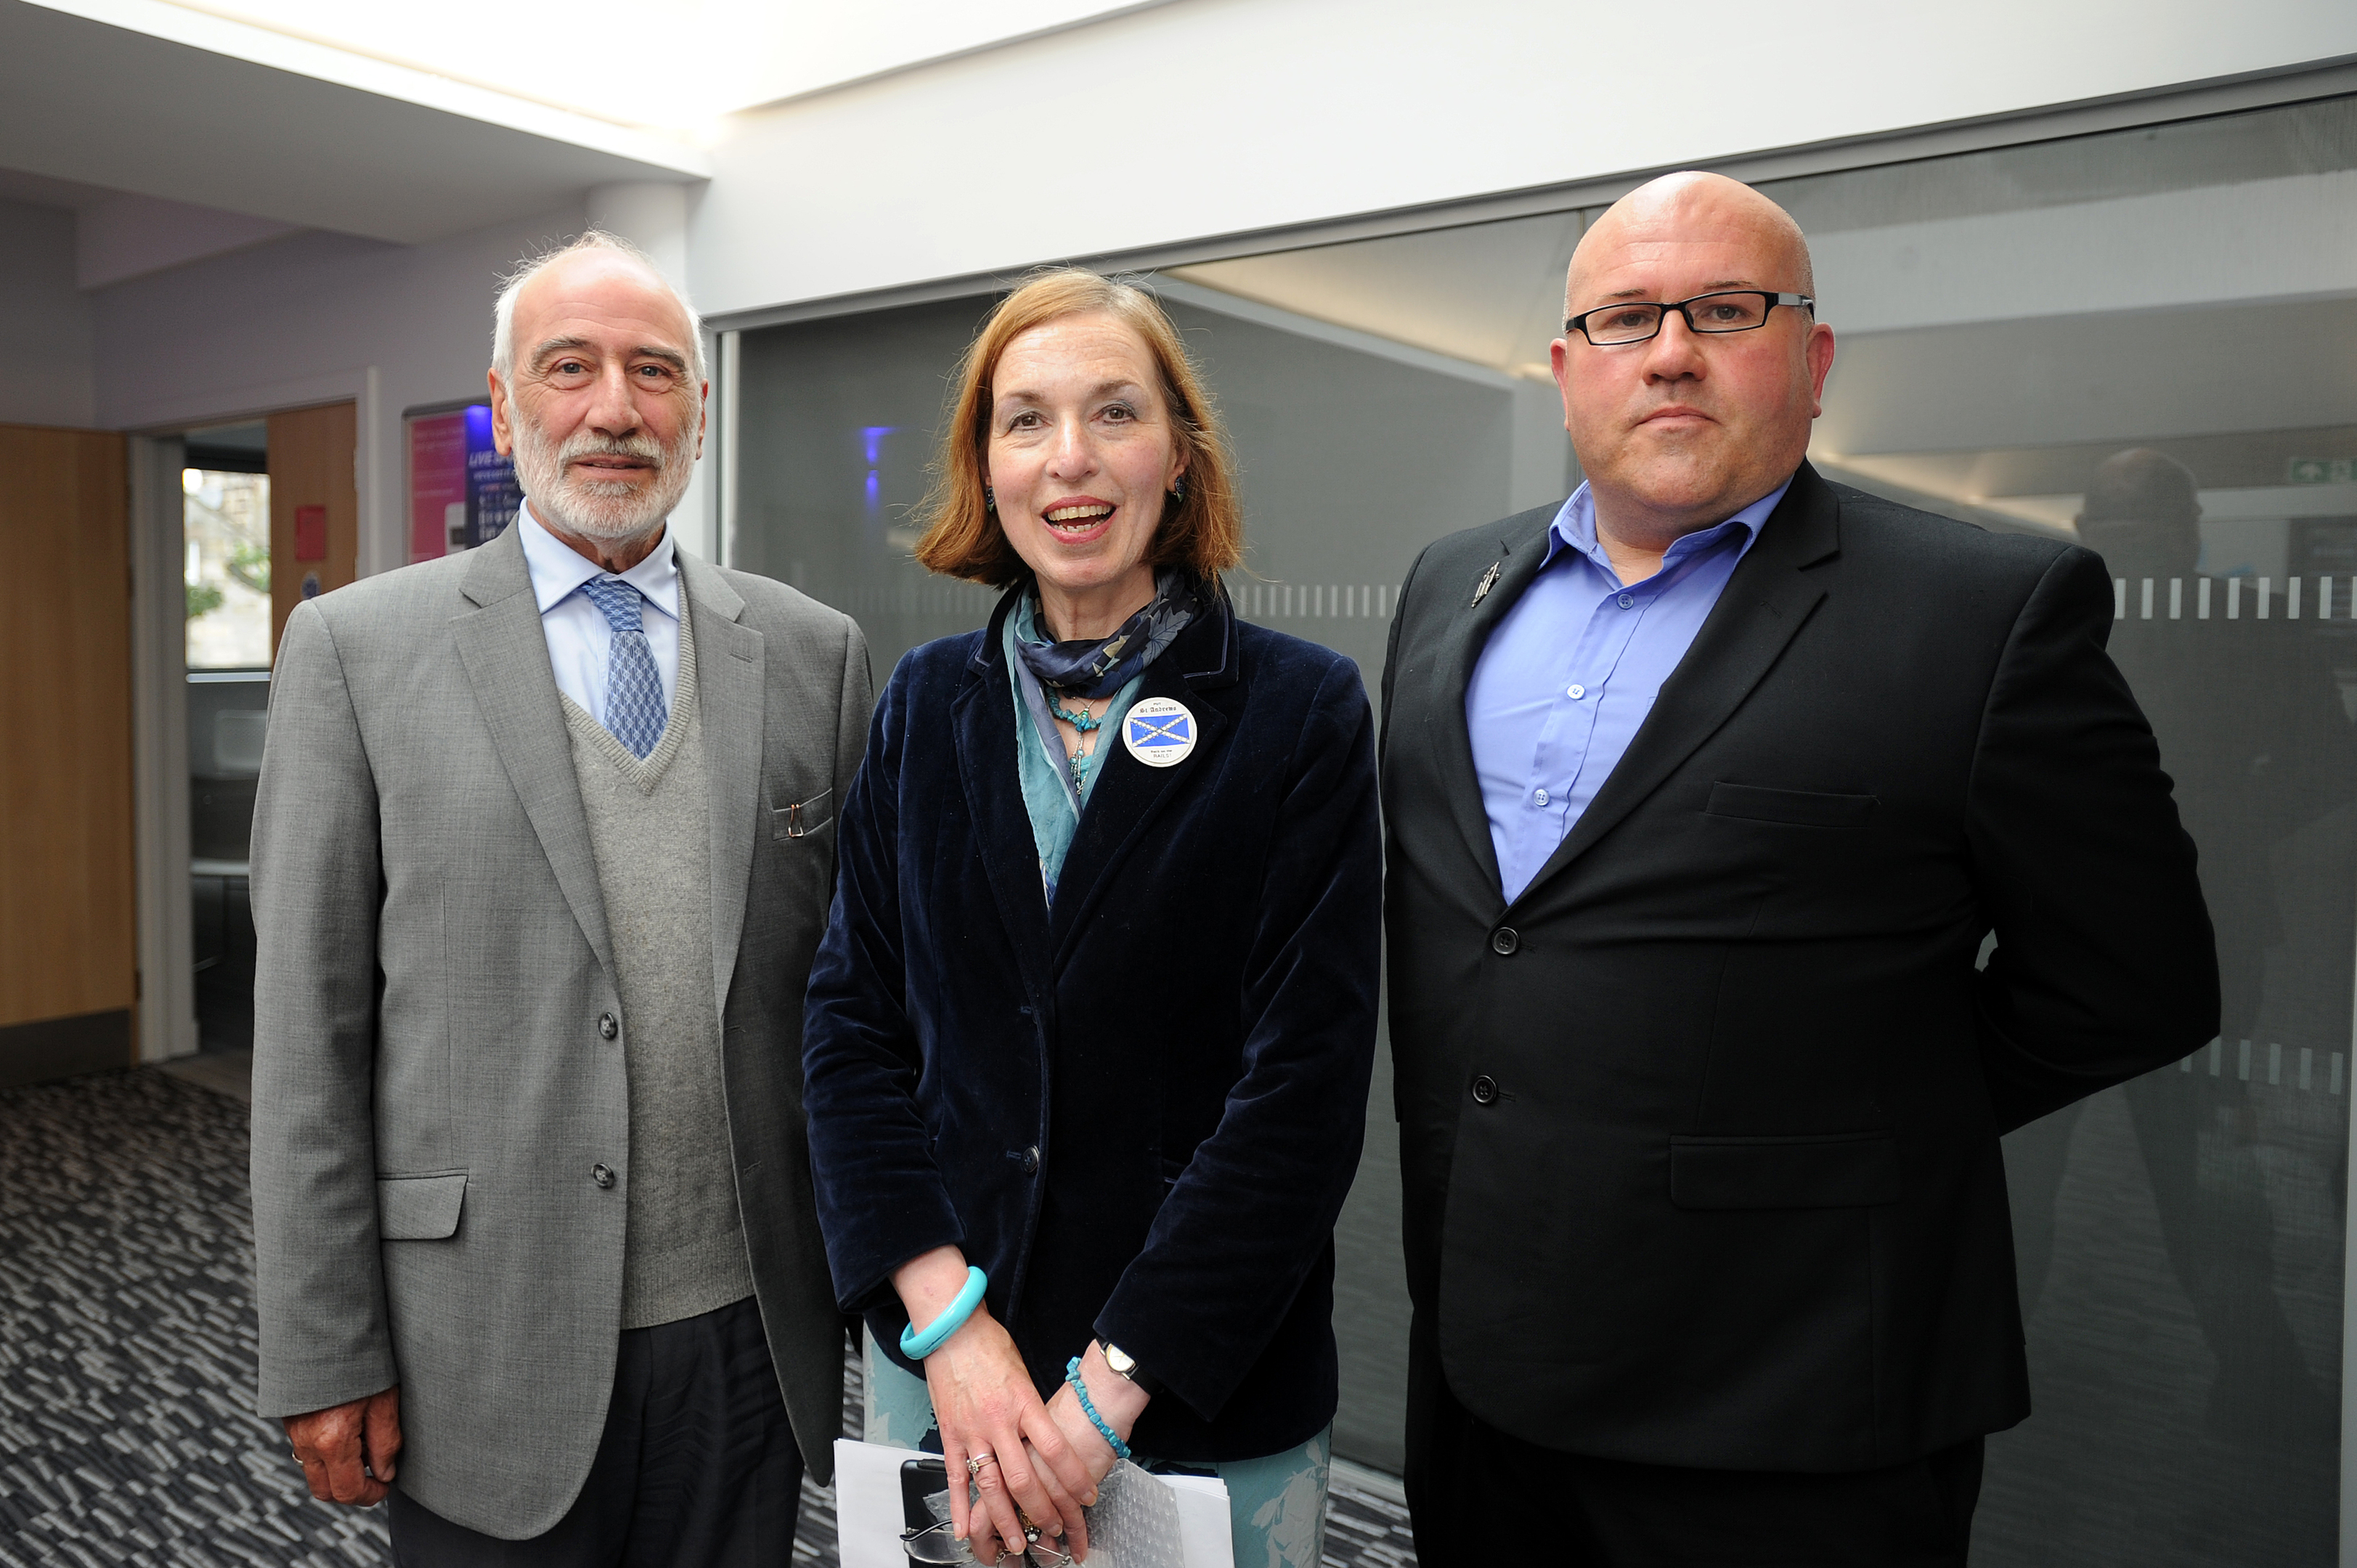 Members of the Starlink group who launched the study - Richard Batchelor, treasurer, Jane Ann Liston, convenor, and Dita Stanis-Traken, secretary.